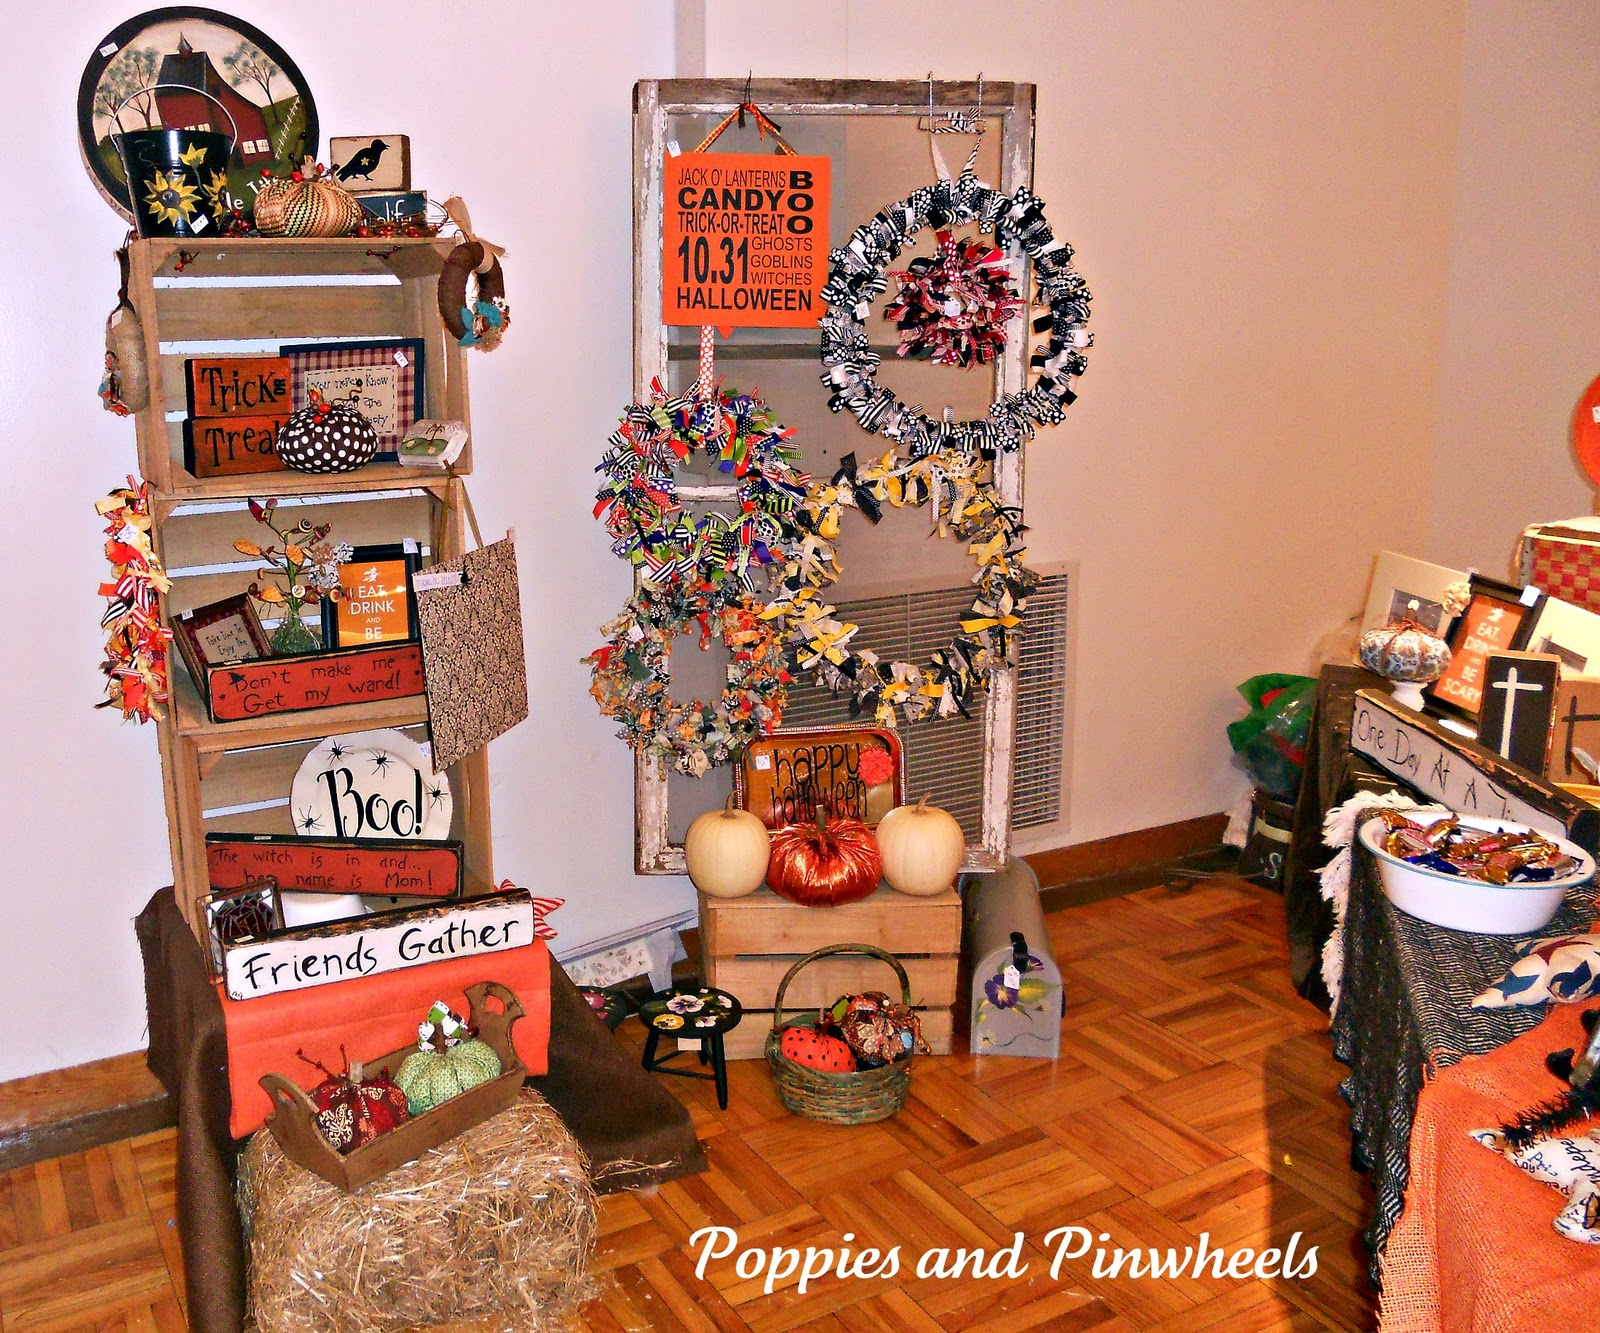 Fall Craft Show Ideas http://poppiesandpinwheels.blogspot.com/2011/10/craft-show.html